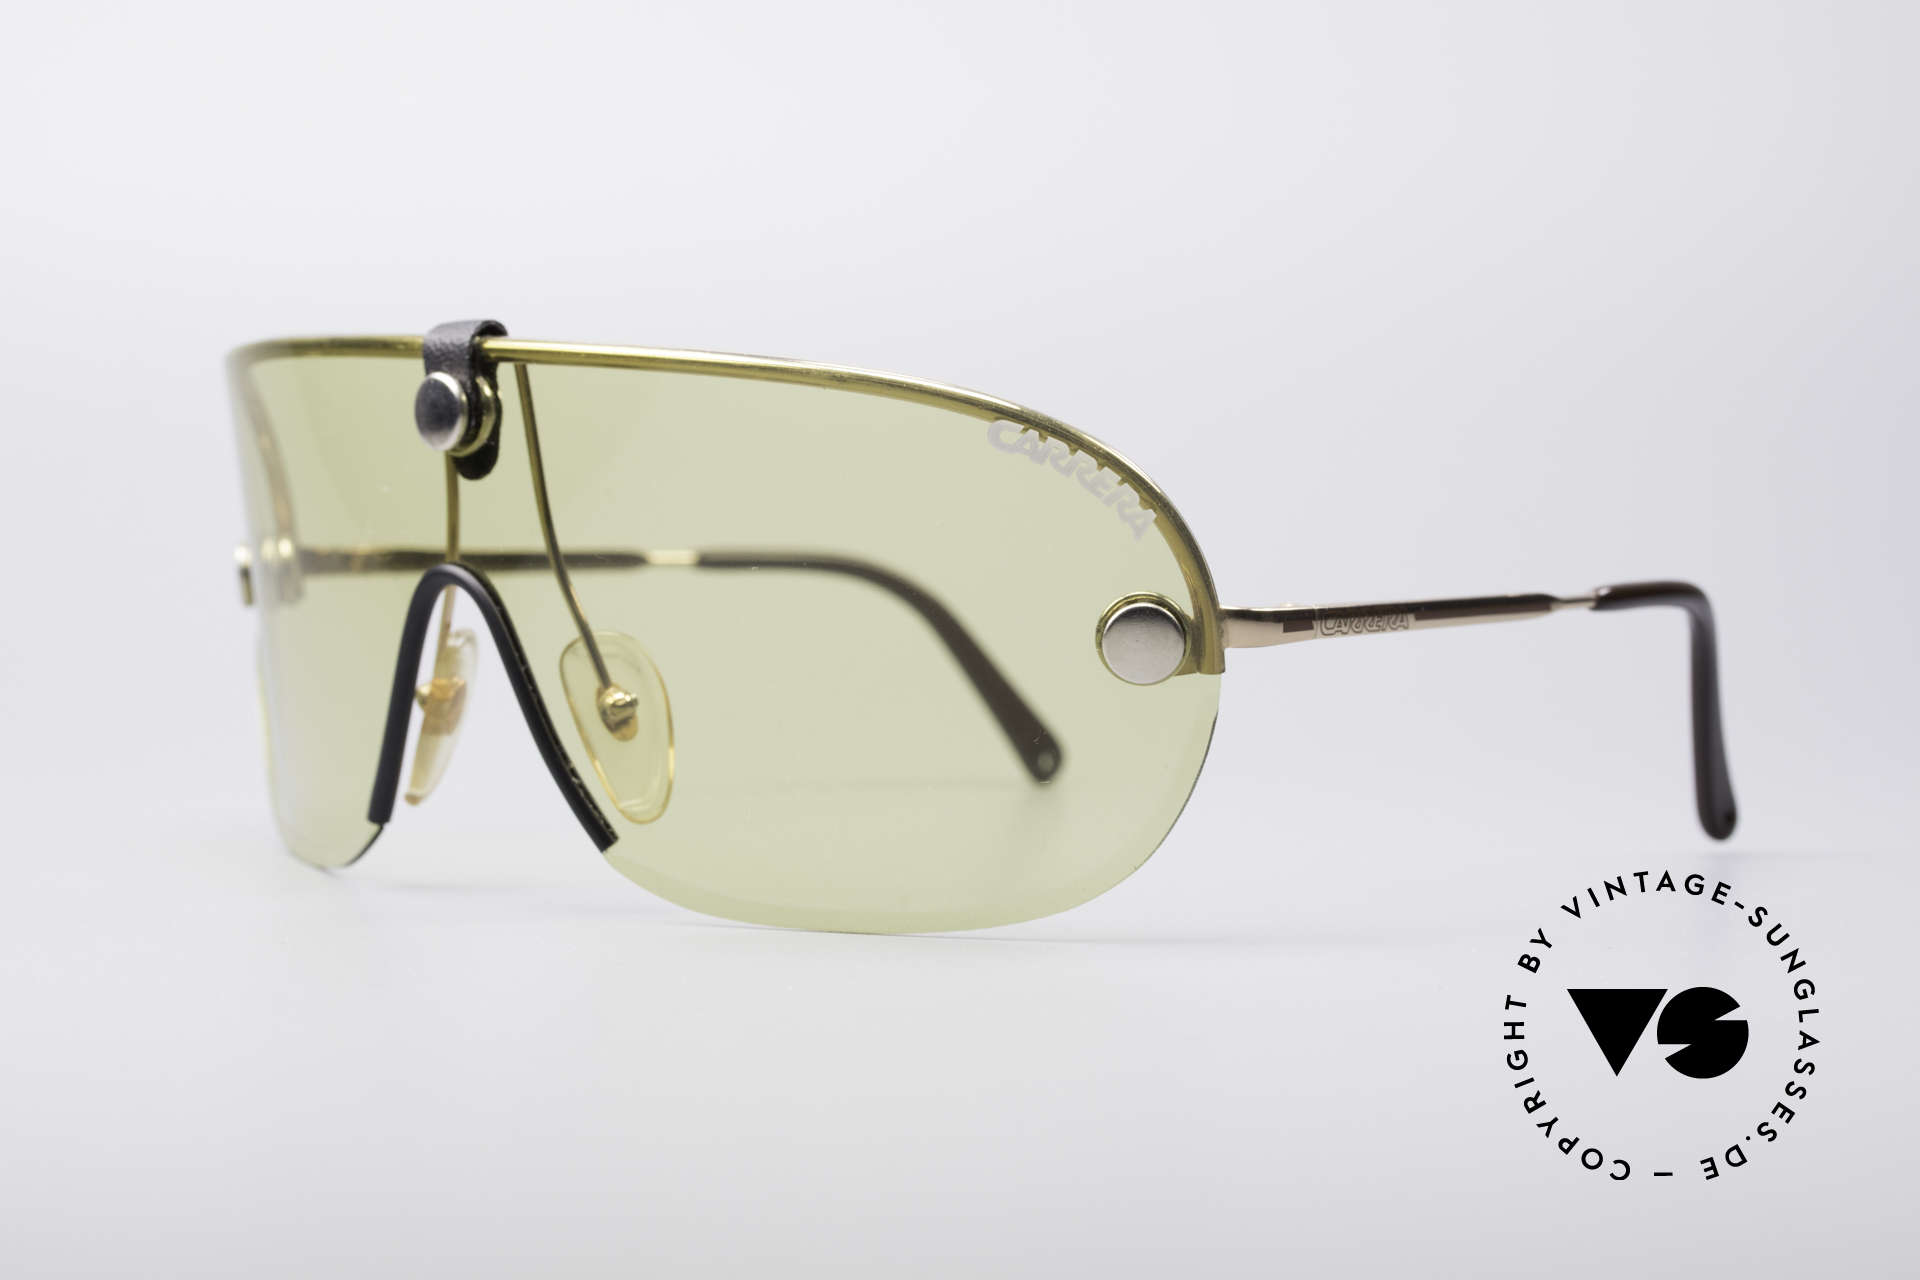 Carrera 5418 All Weather Sunglasses, yellow (kalichrome) intensify light and increase contrast, Made for Men